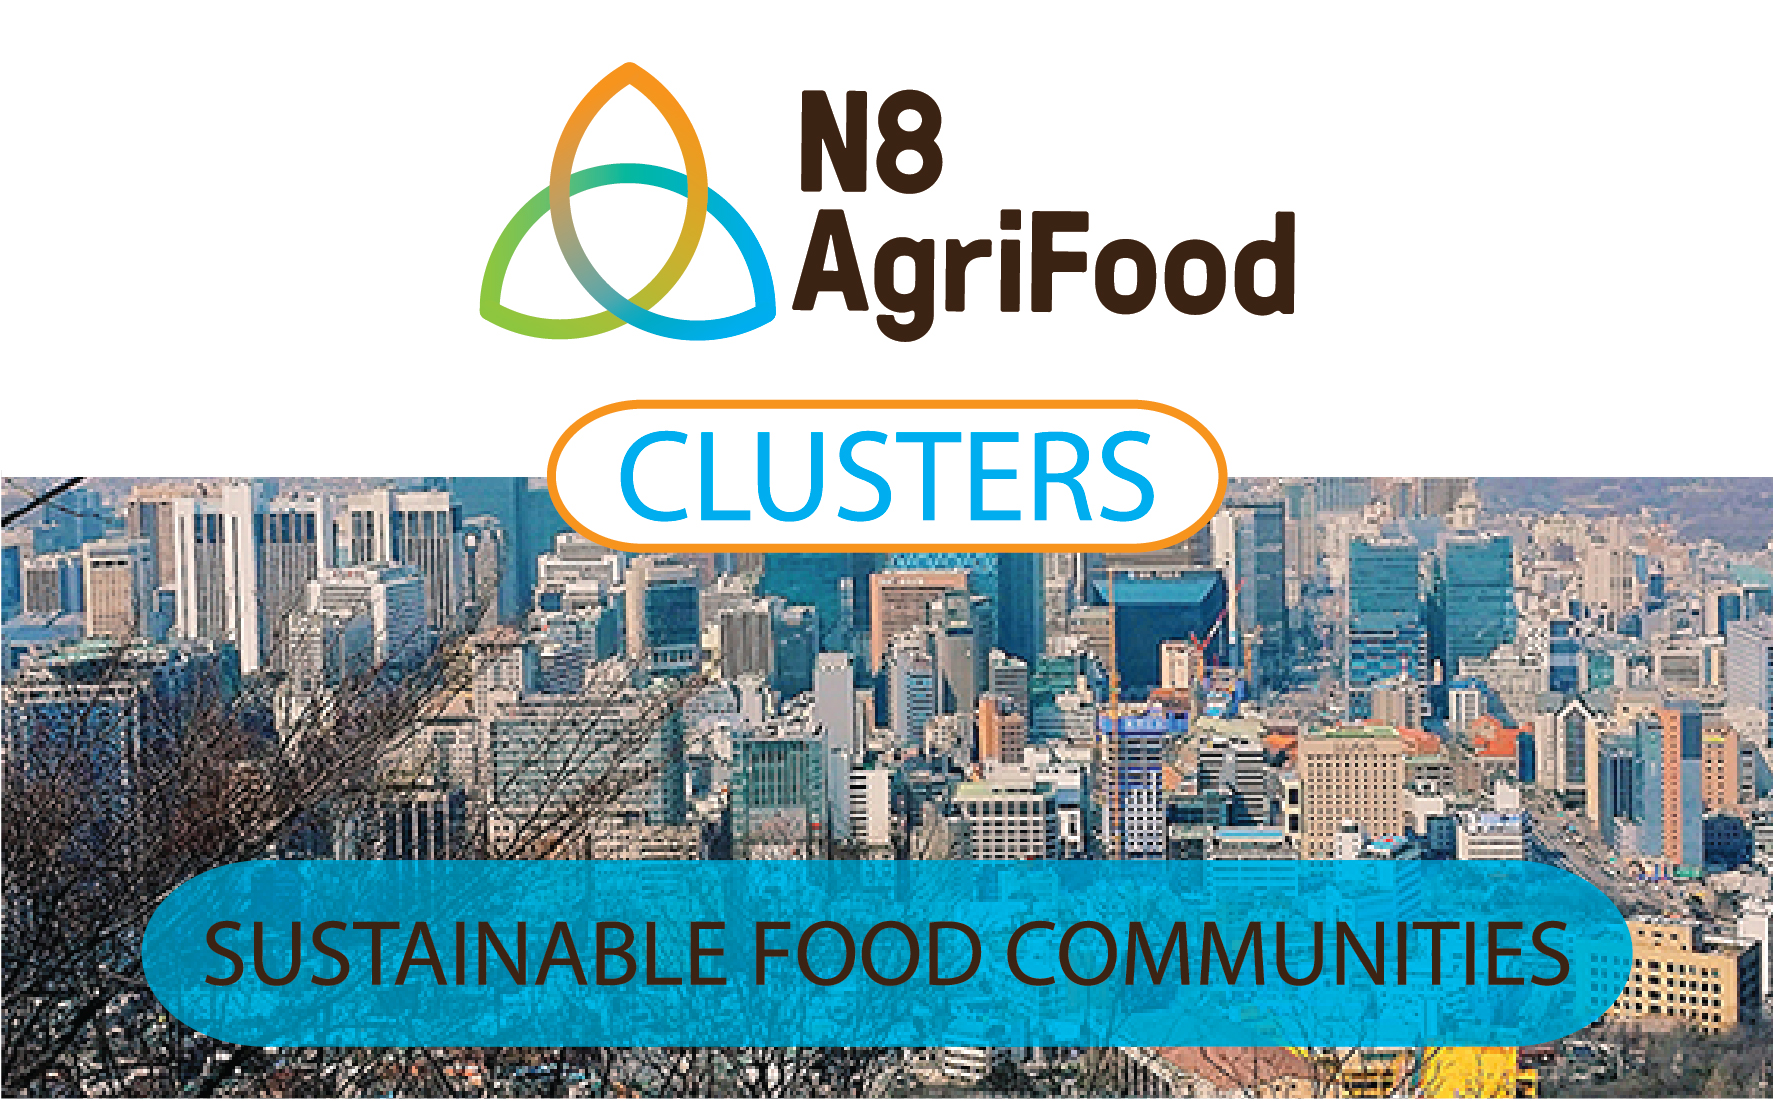 N8 AgriFood Sustainable Food Communities Cluster